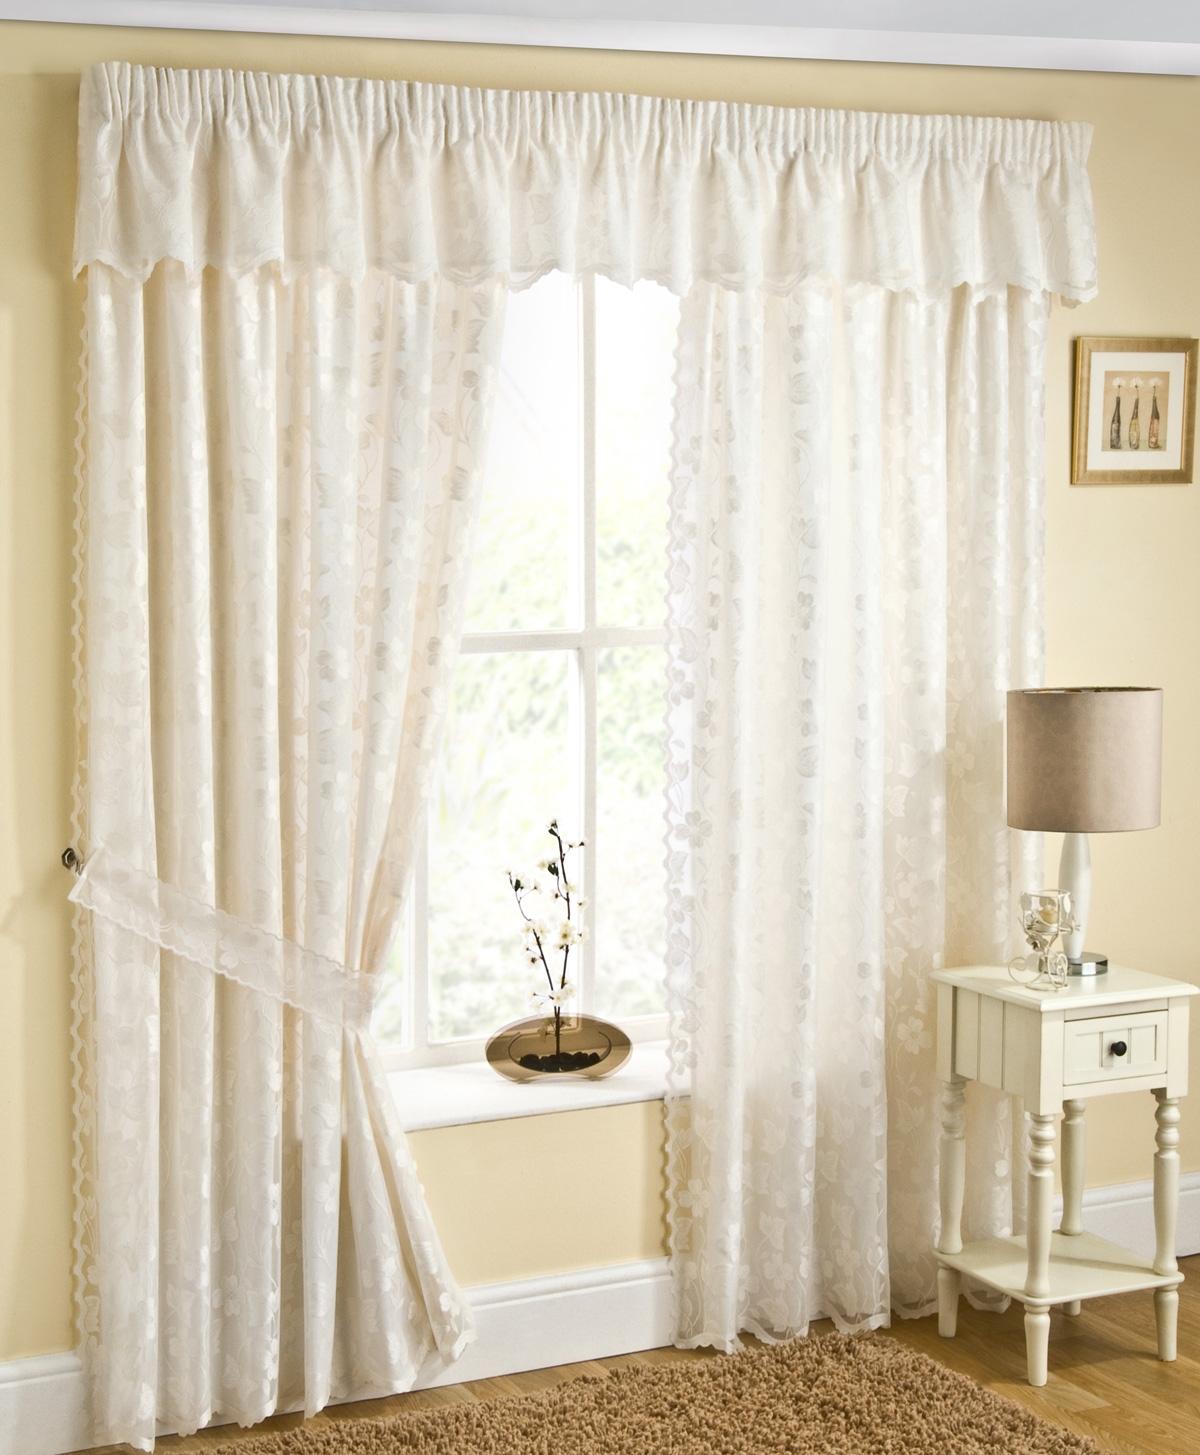 Top 30 Cheapest Lined Voile Curtains Uk Prices Best Deals On With Lined Cream Curtains (View 12 of 15)